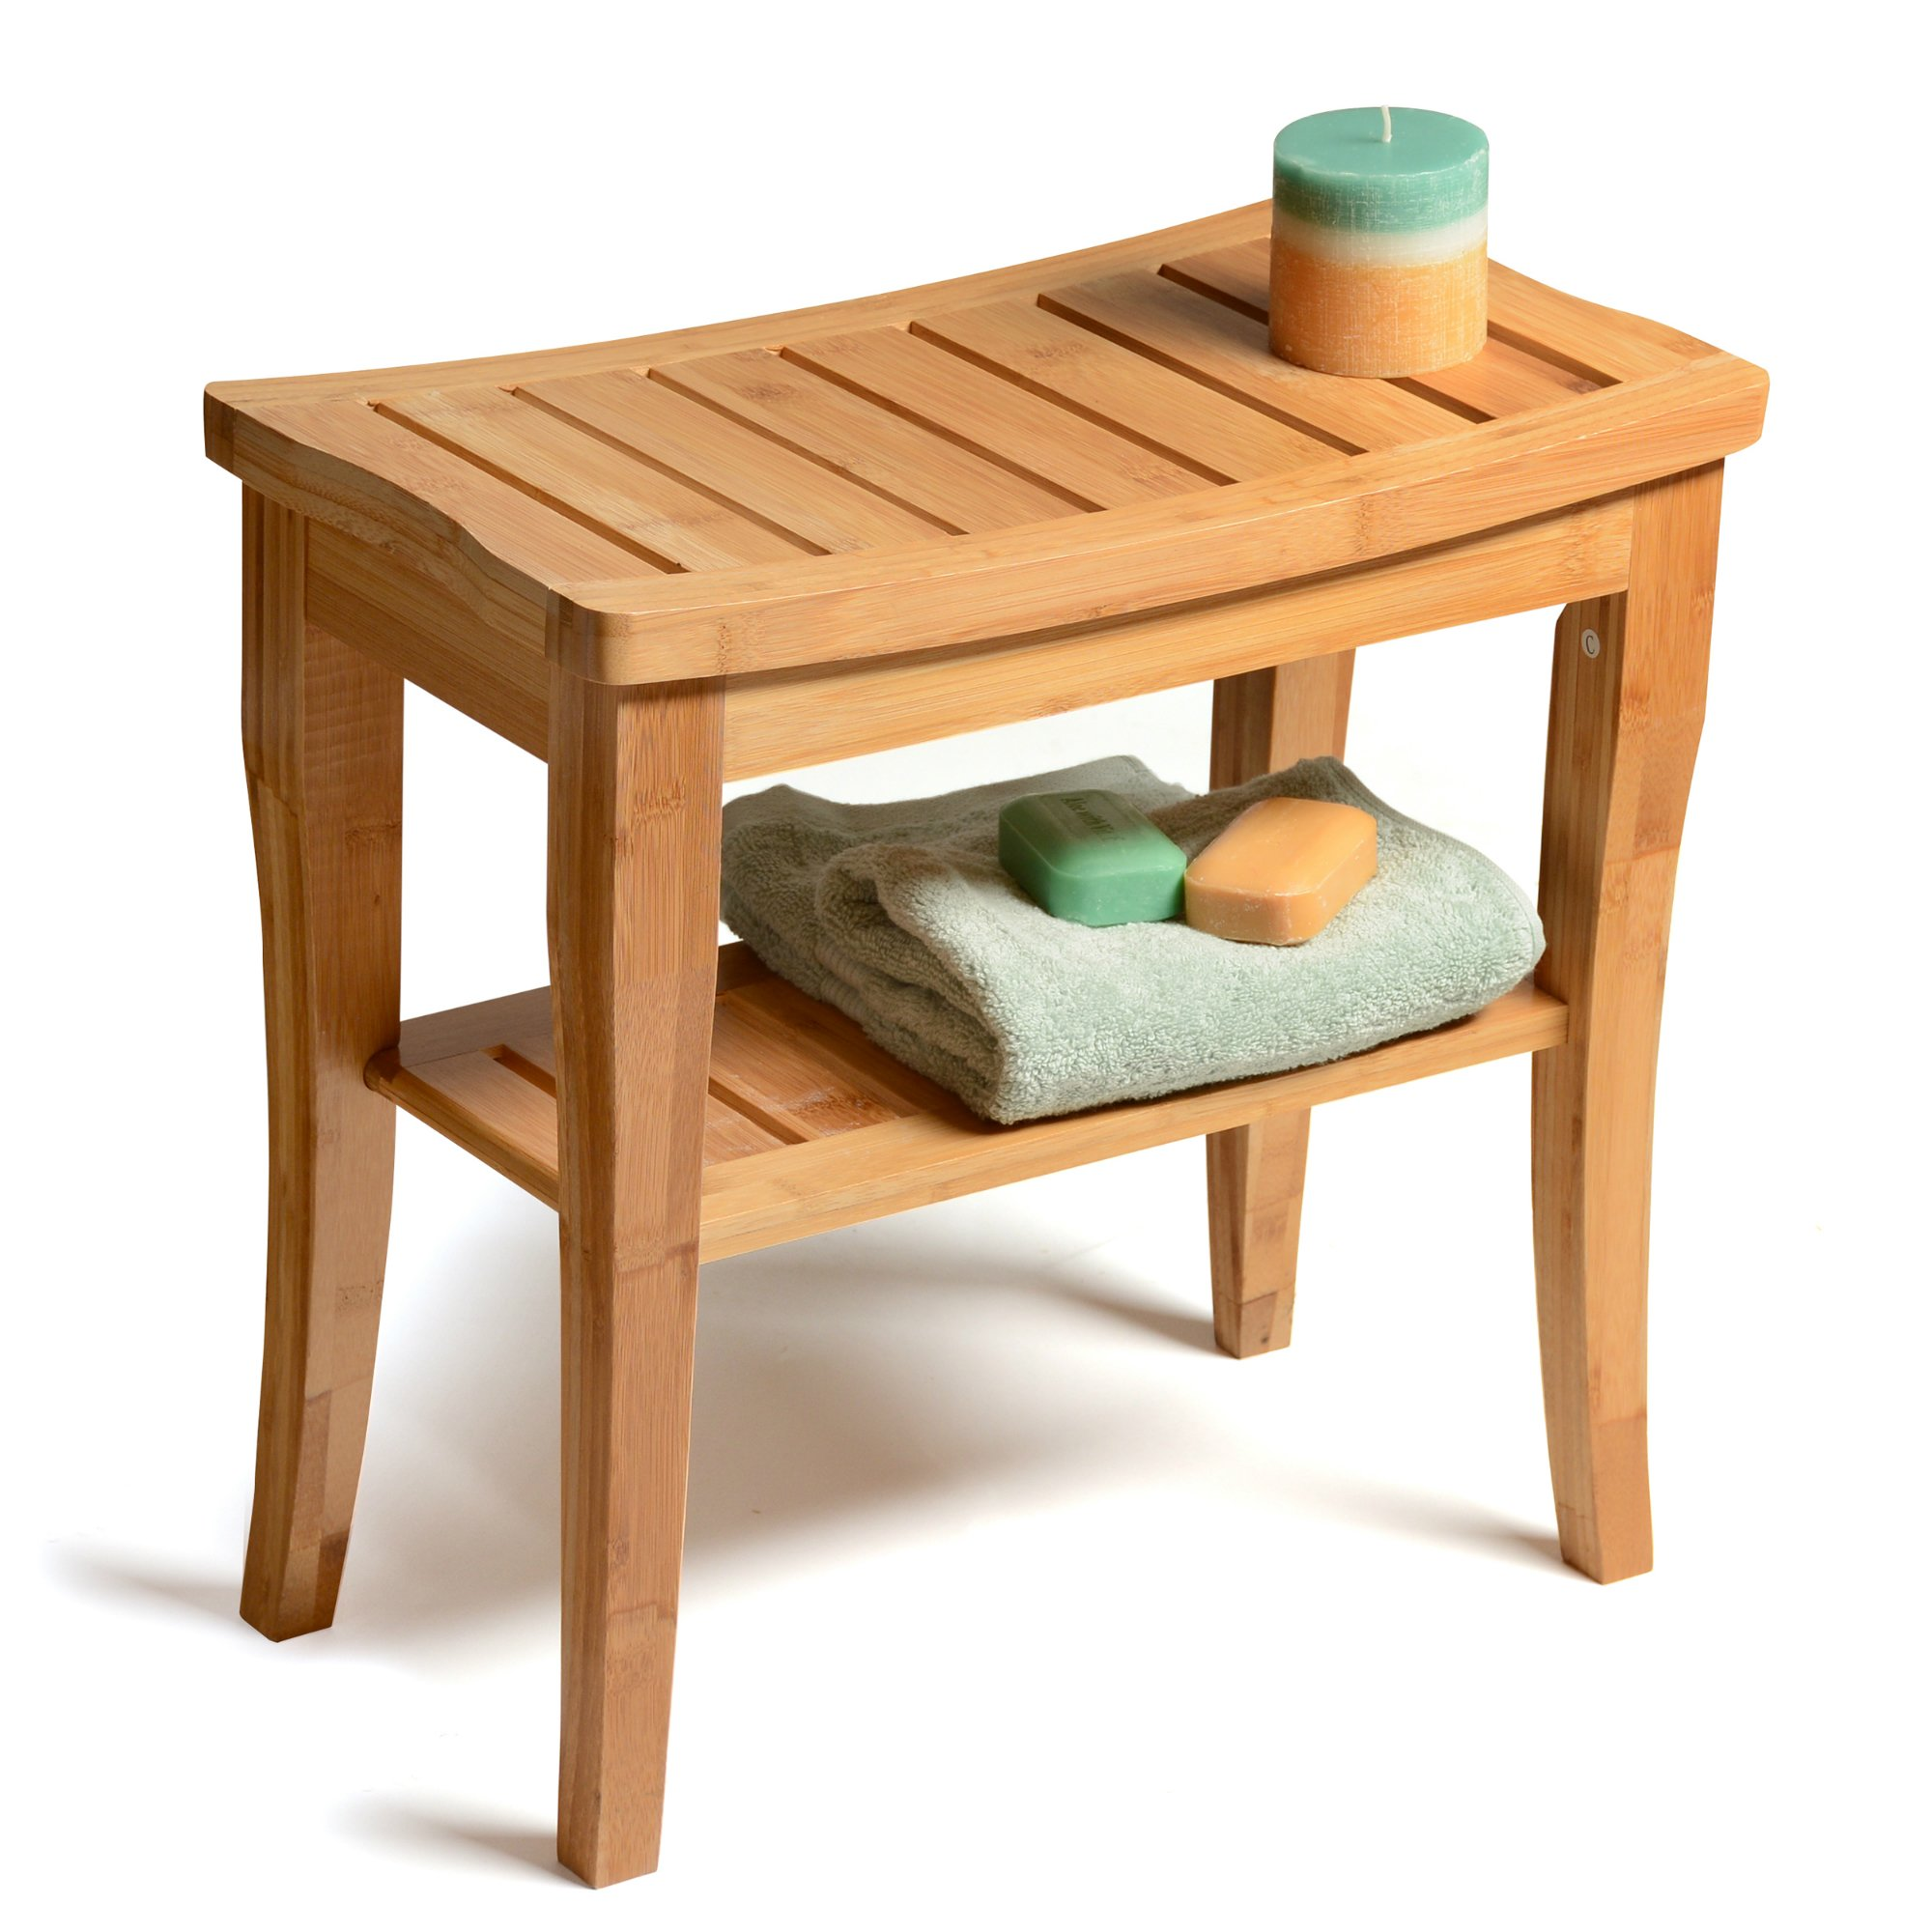 Bambusi Shower Bench Stool with Shelf - Bamboo Spa Bathroom Decor - Wood Seat Bench for Indoor or Outdoor Use by Bambüsi